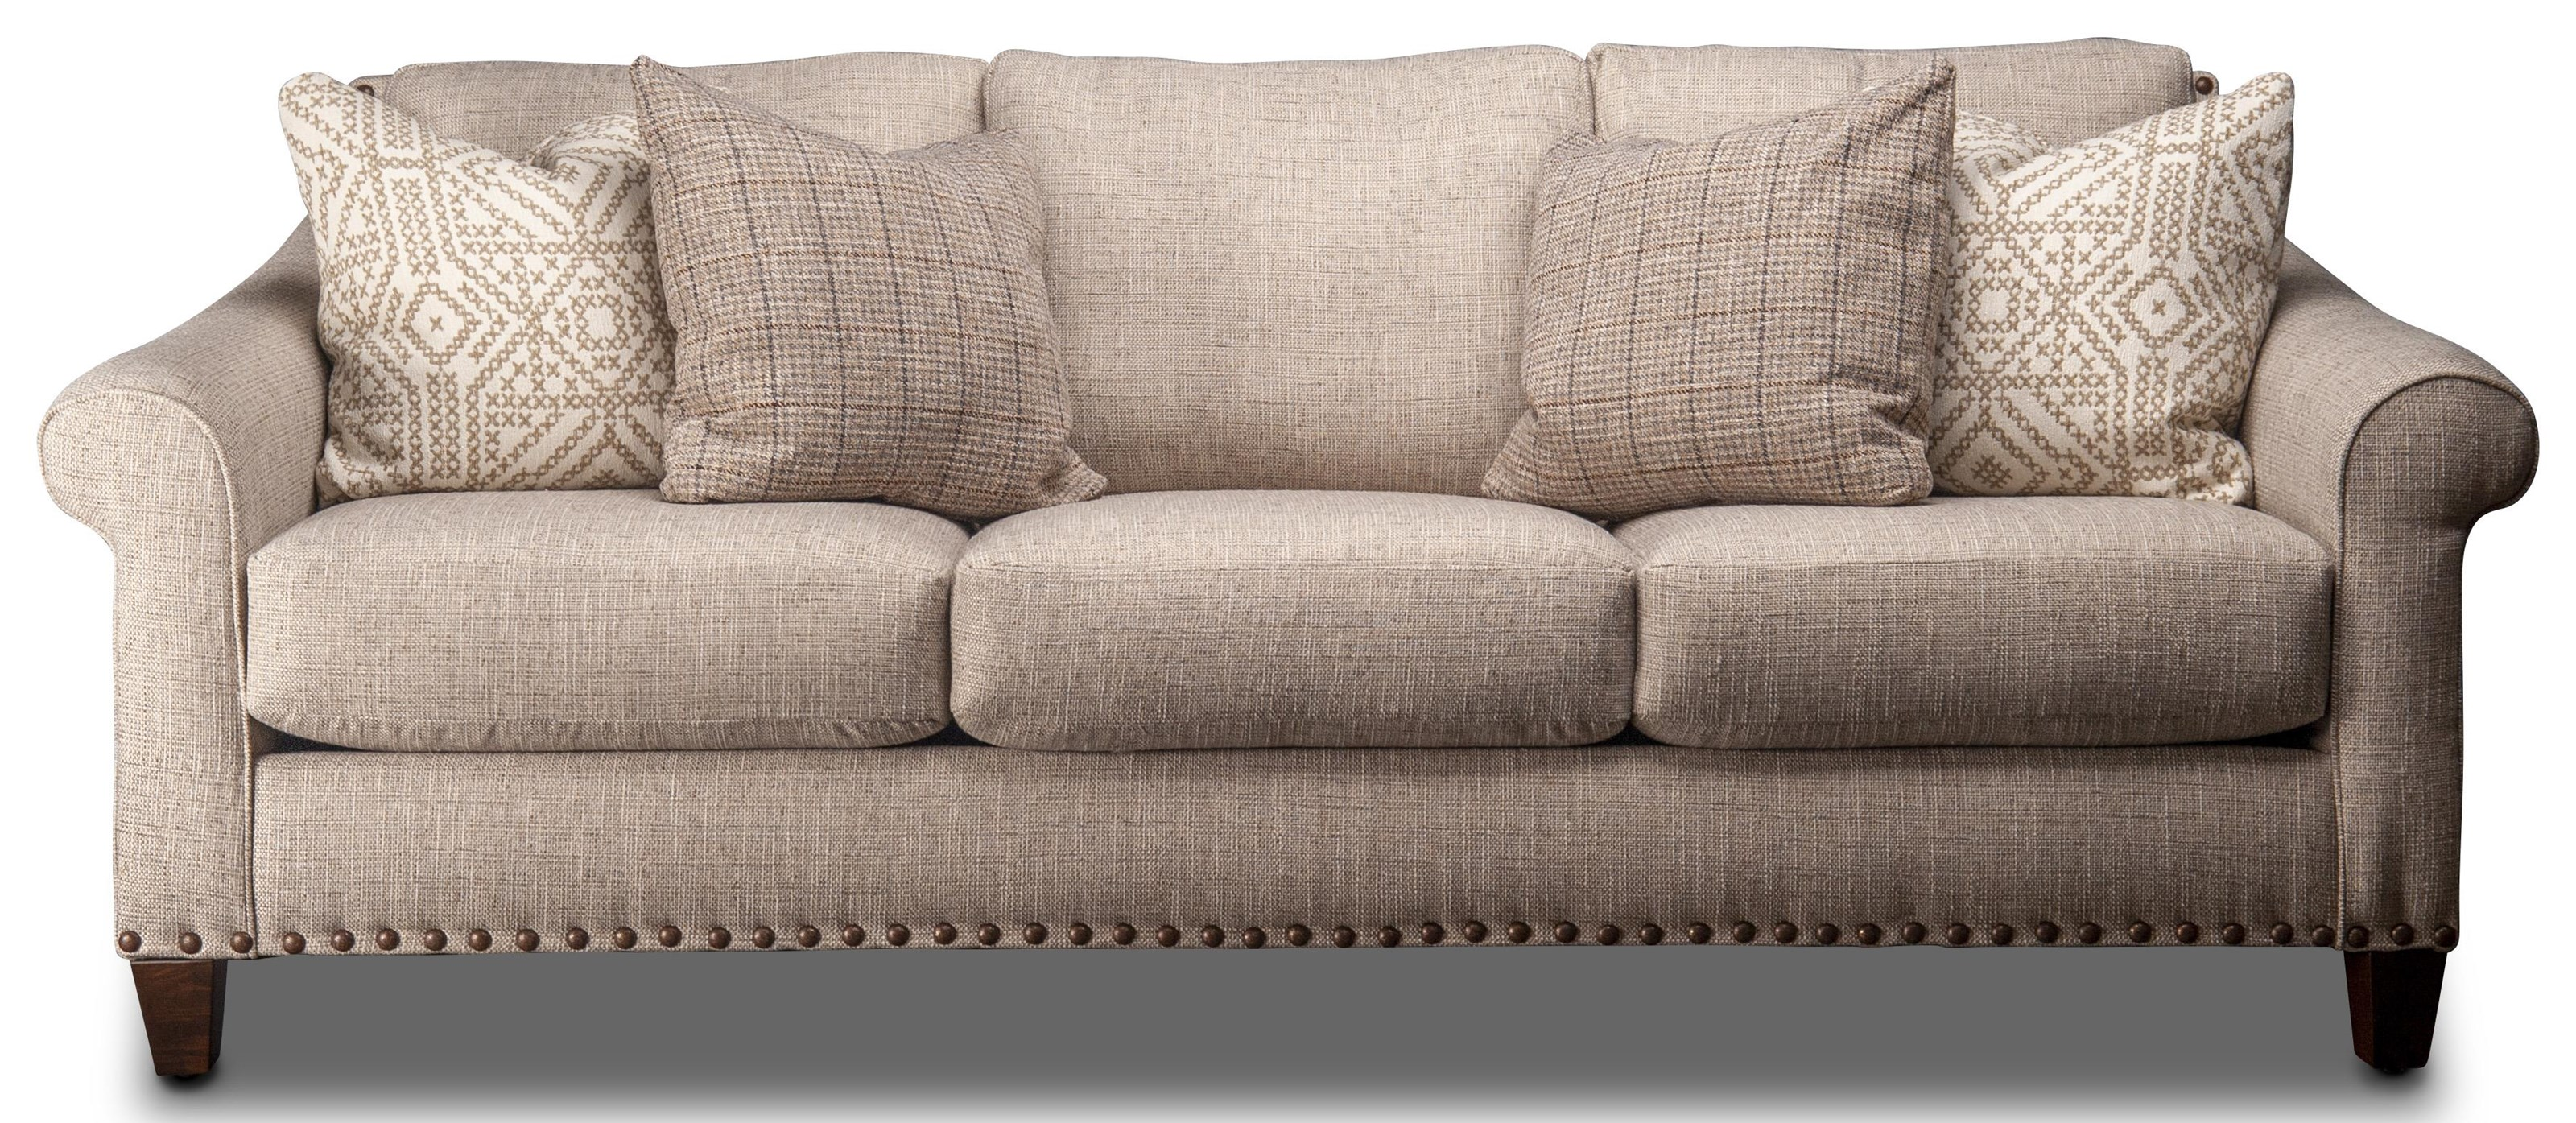 Lainey Lainey Sofa by Klaussner at Morris Home